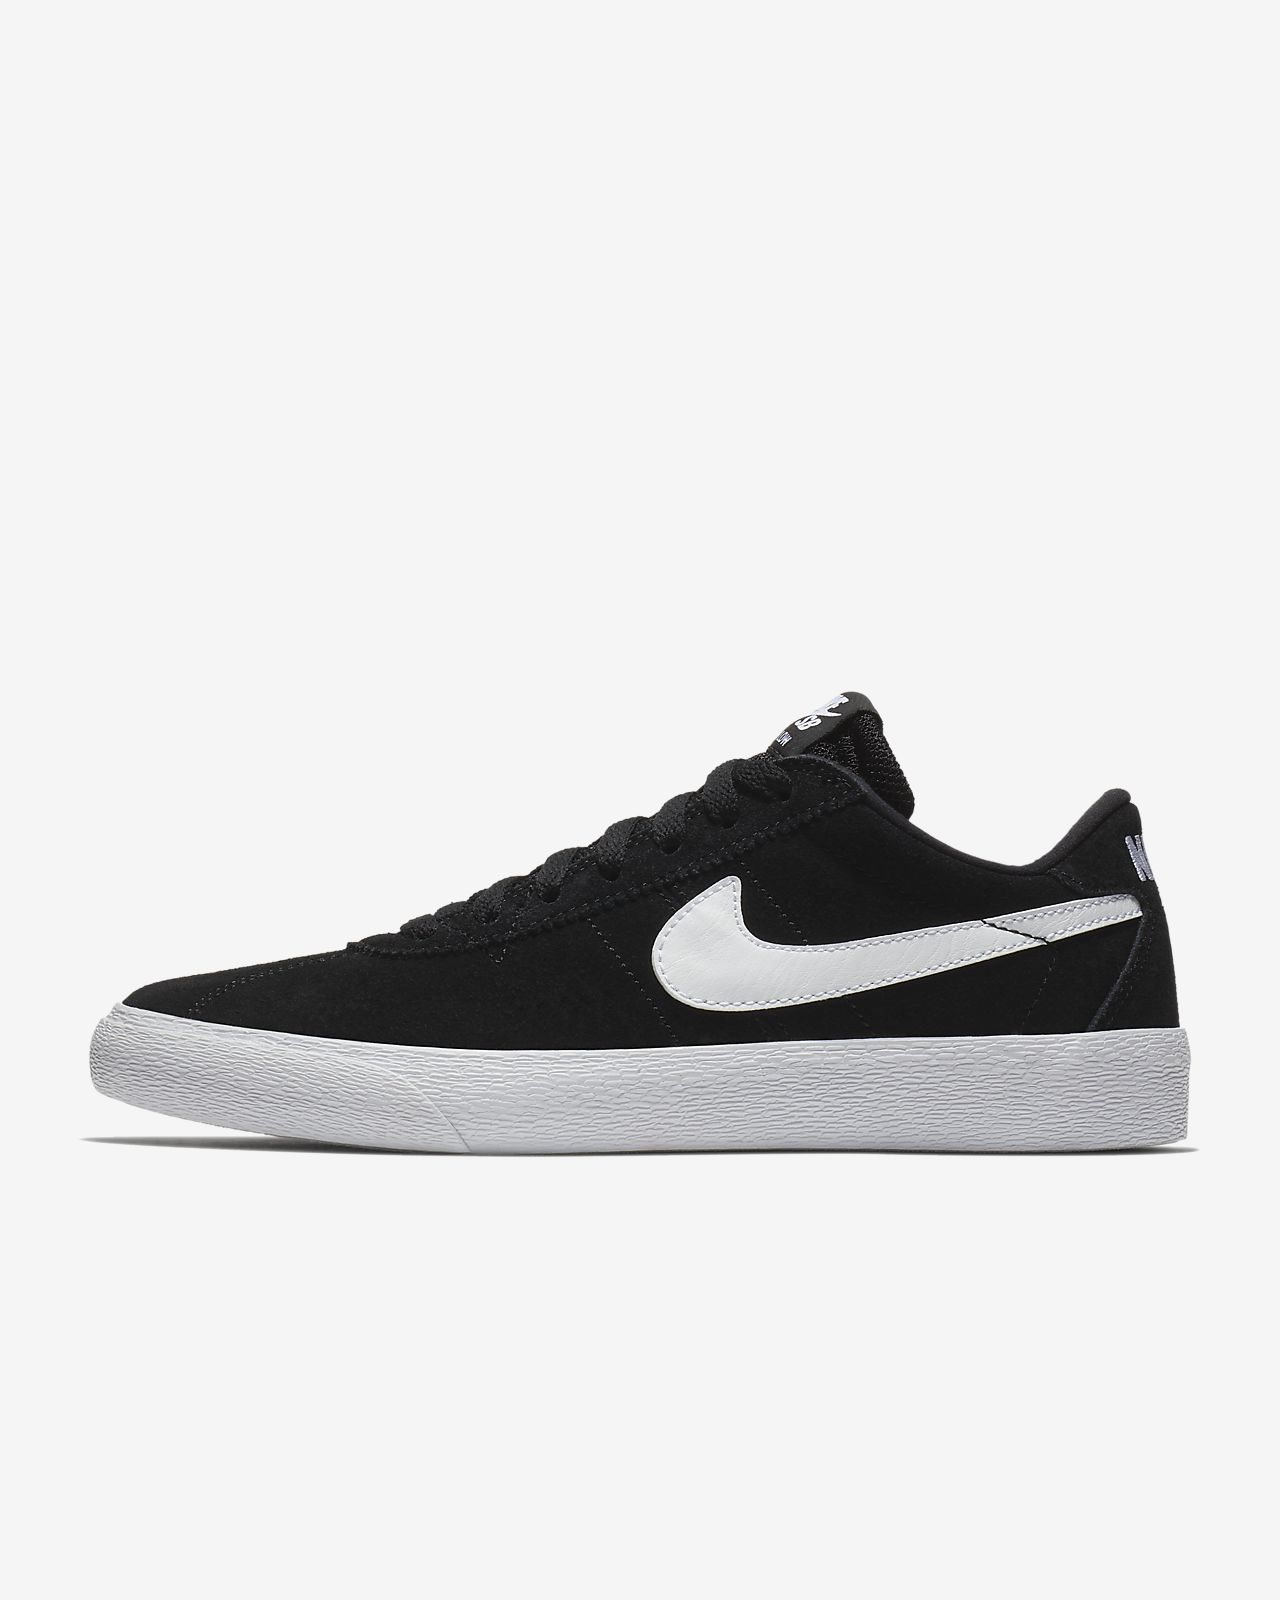 best website 00869 36ec3 Damskie buty do skateboardingu Nike SB Zoom Bruin Low. Nike.com PL